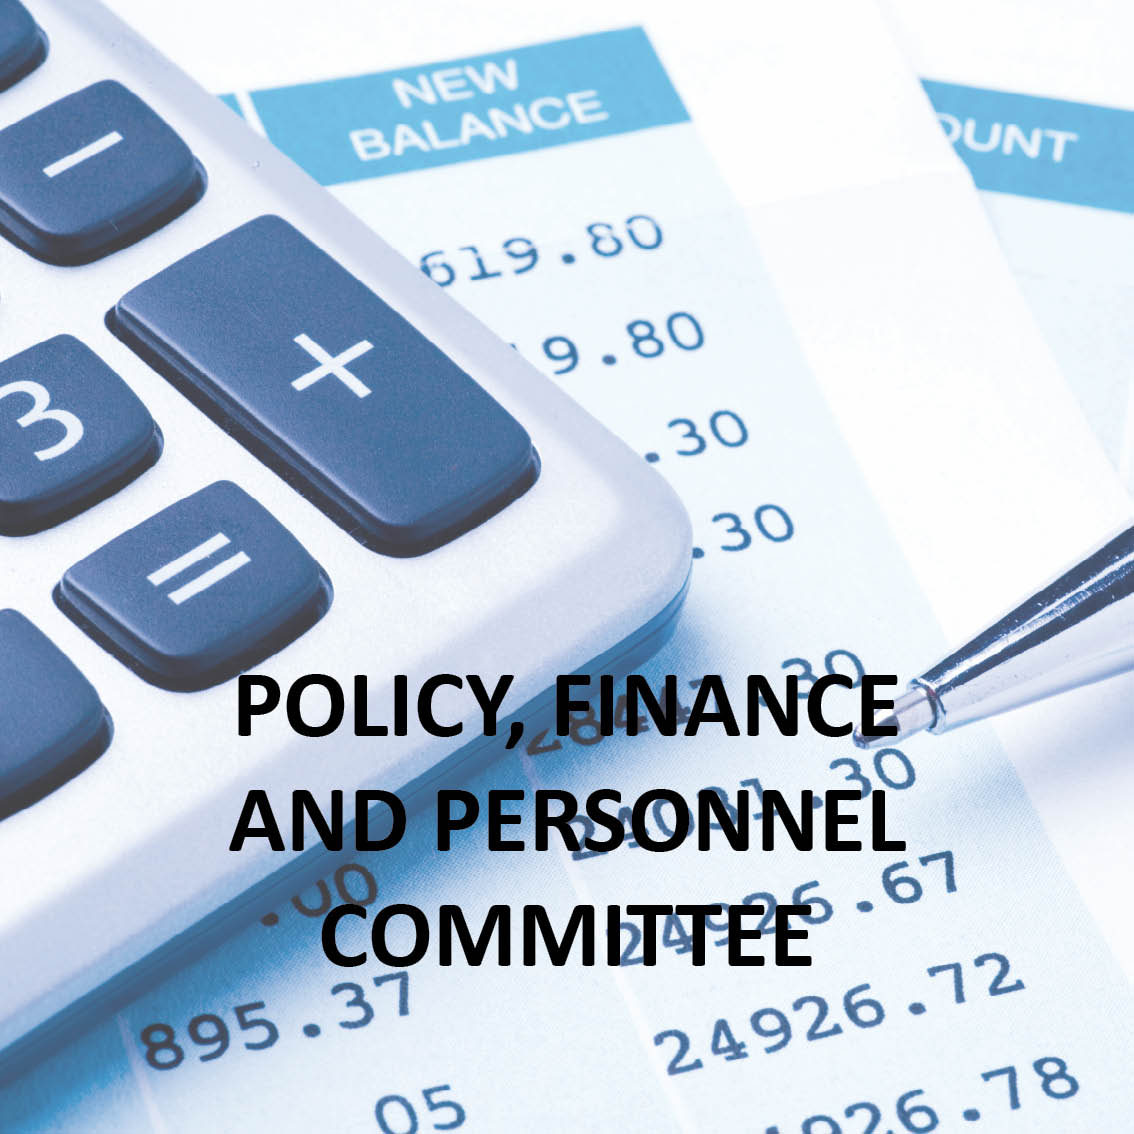 Hyperlink to the Policy, Finance and Personnel Committee meetings